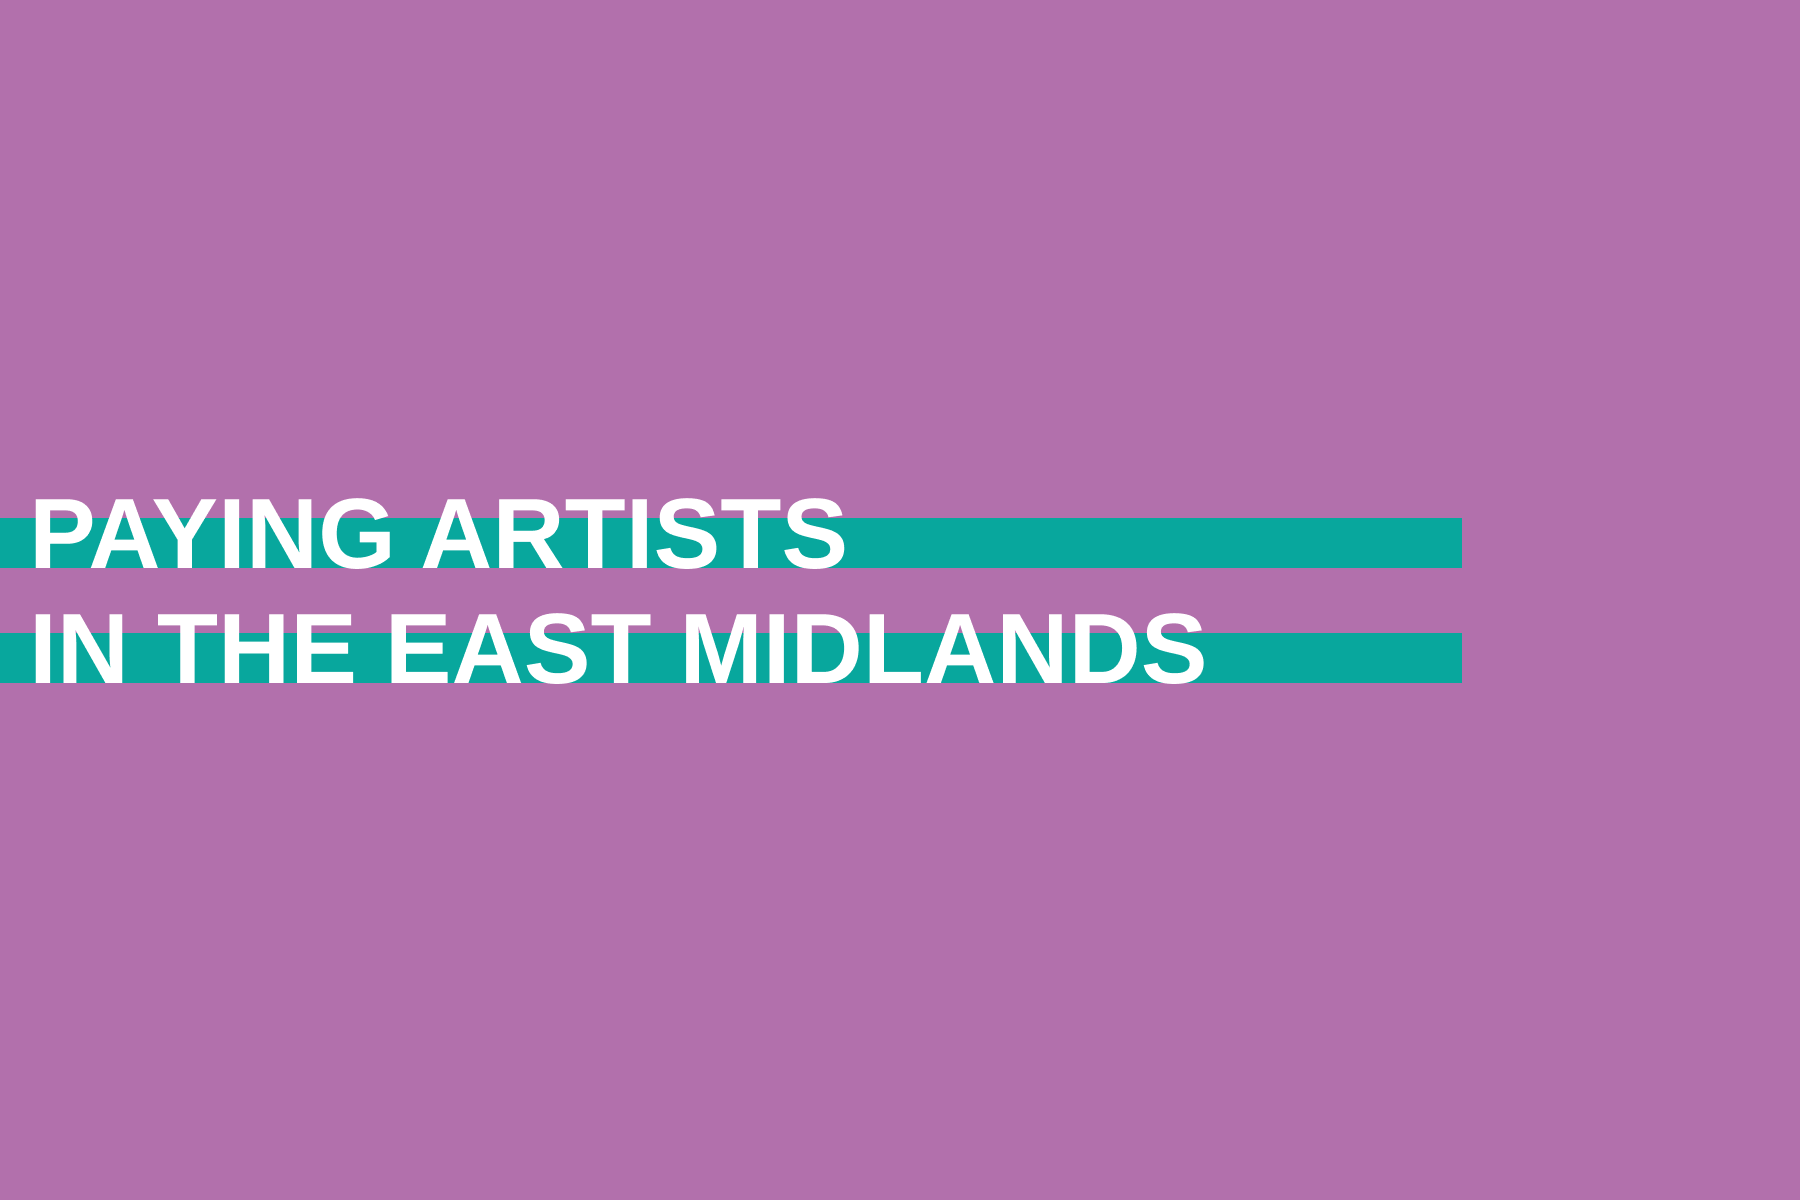 Paying Artists in the East Midlands